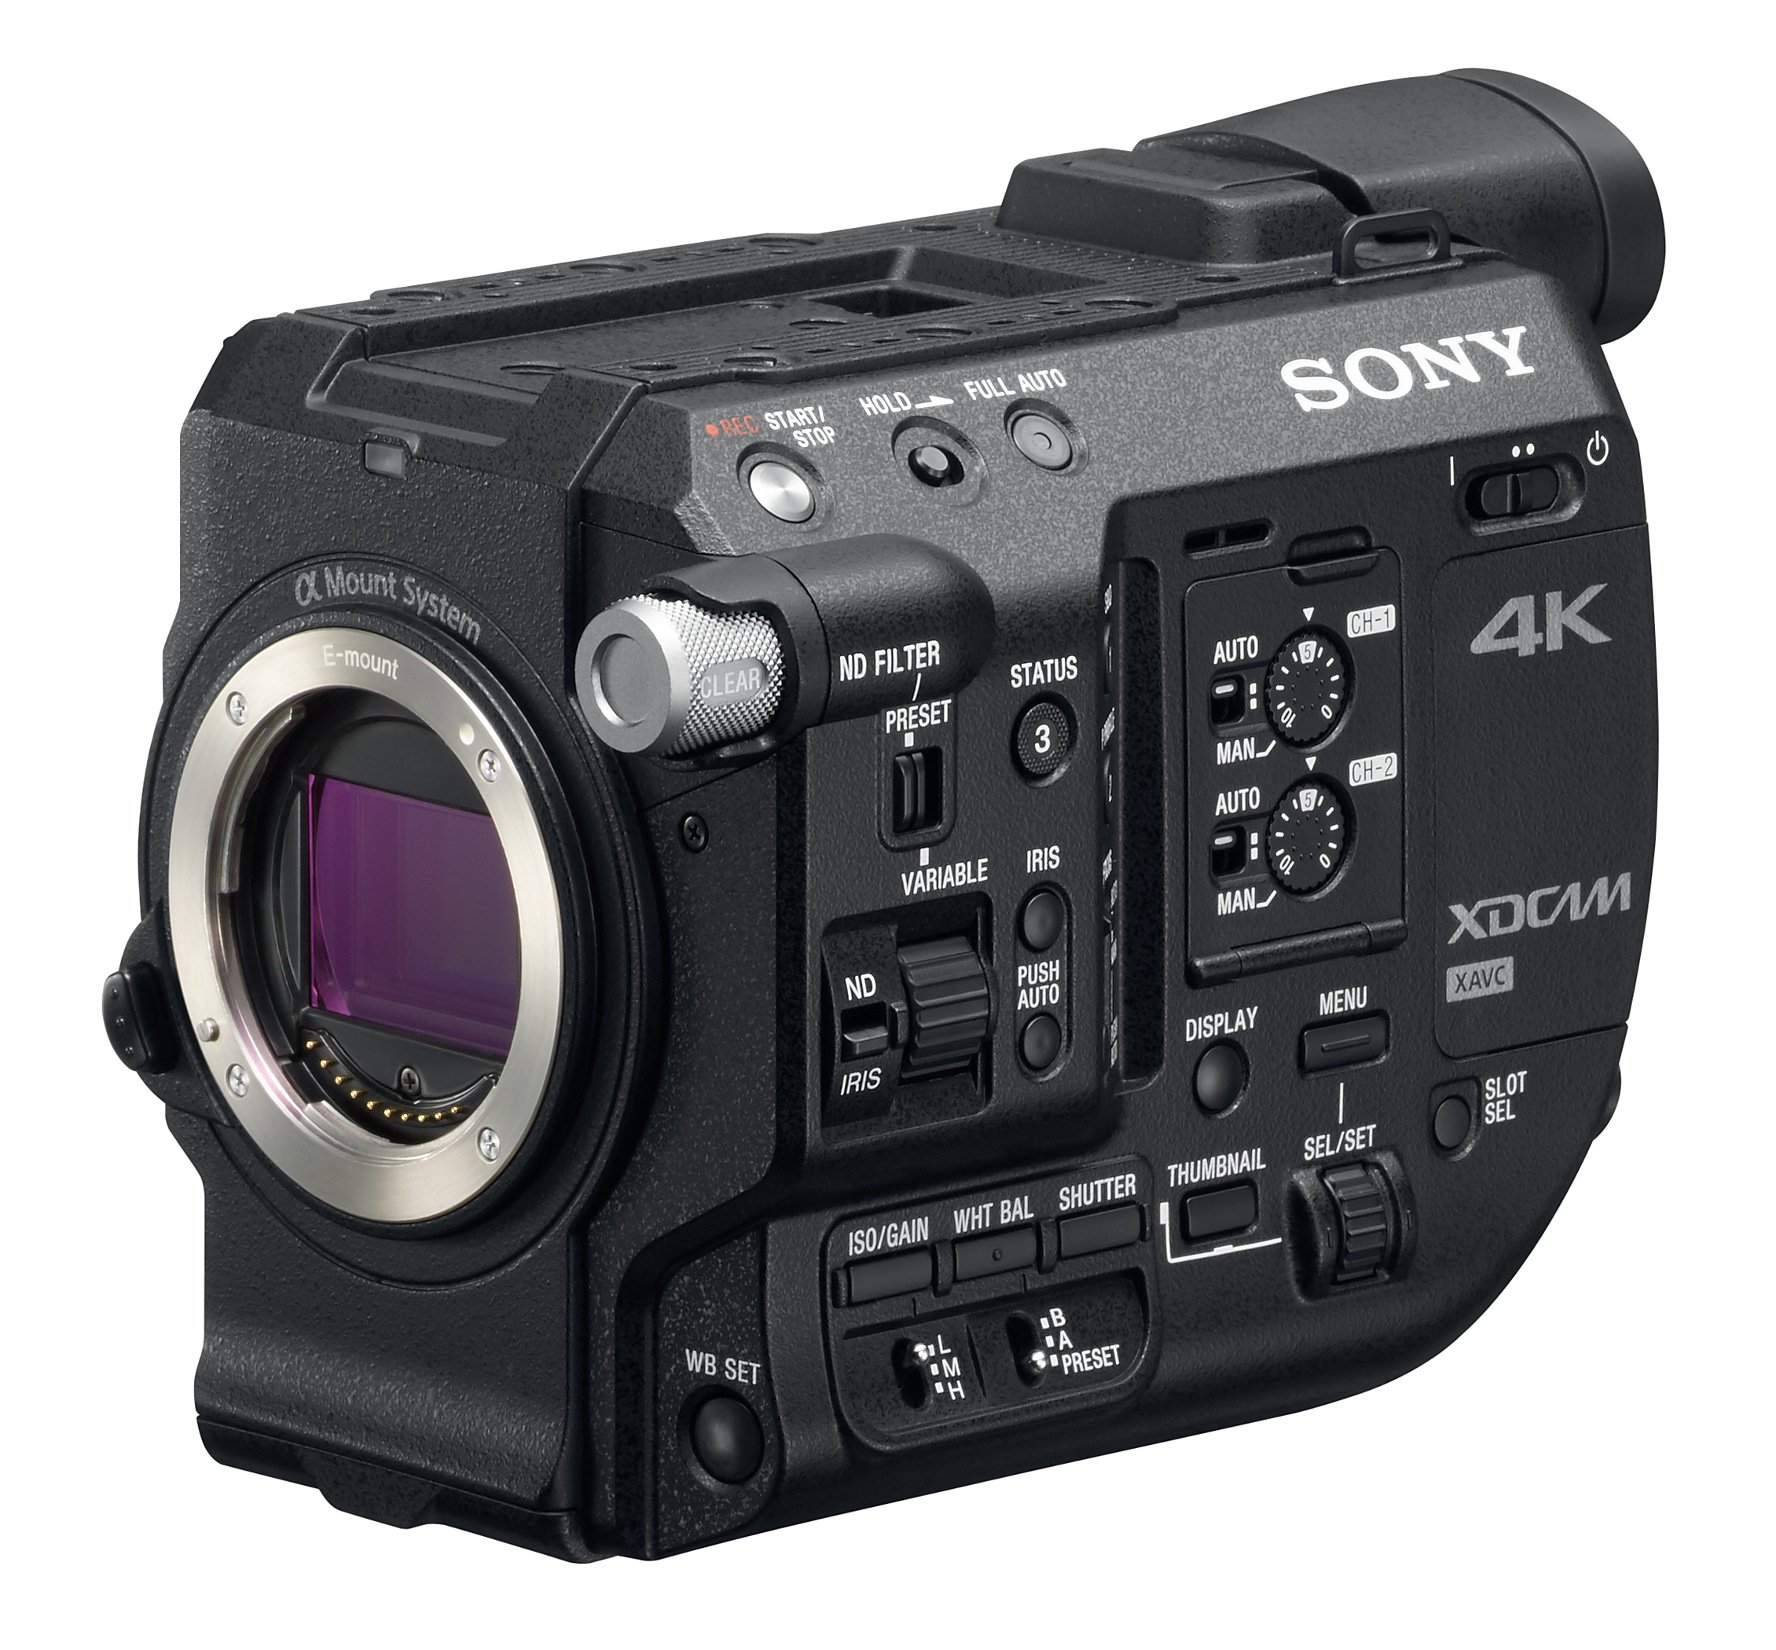 Sony PXW-FS5 Free RAW Upgrade License Mail-In Rebate